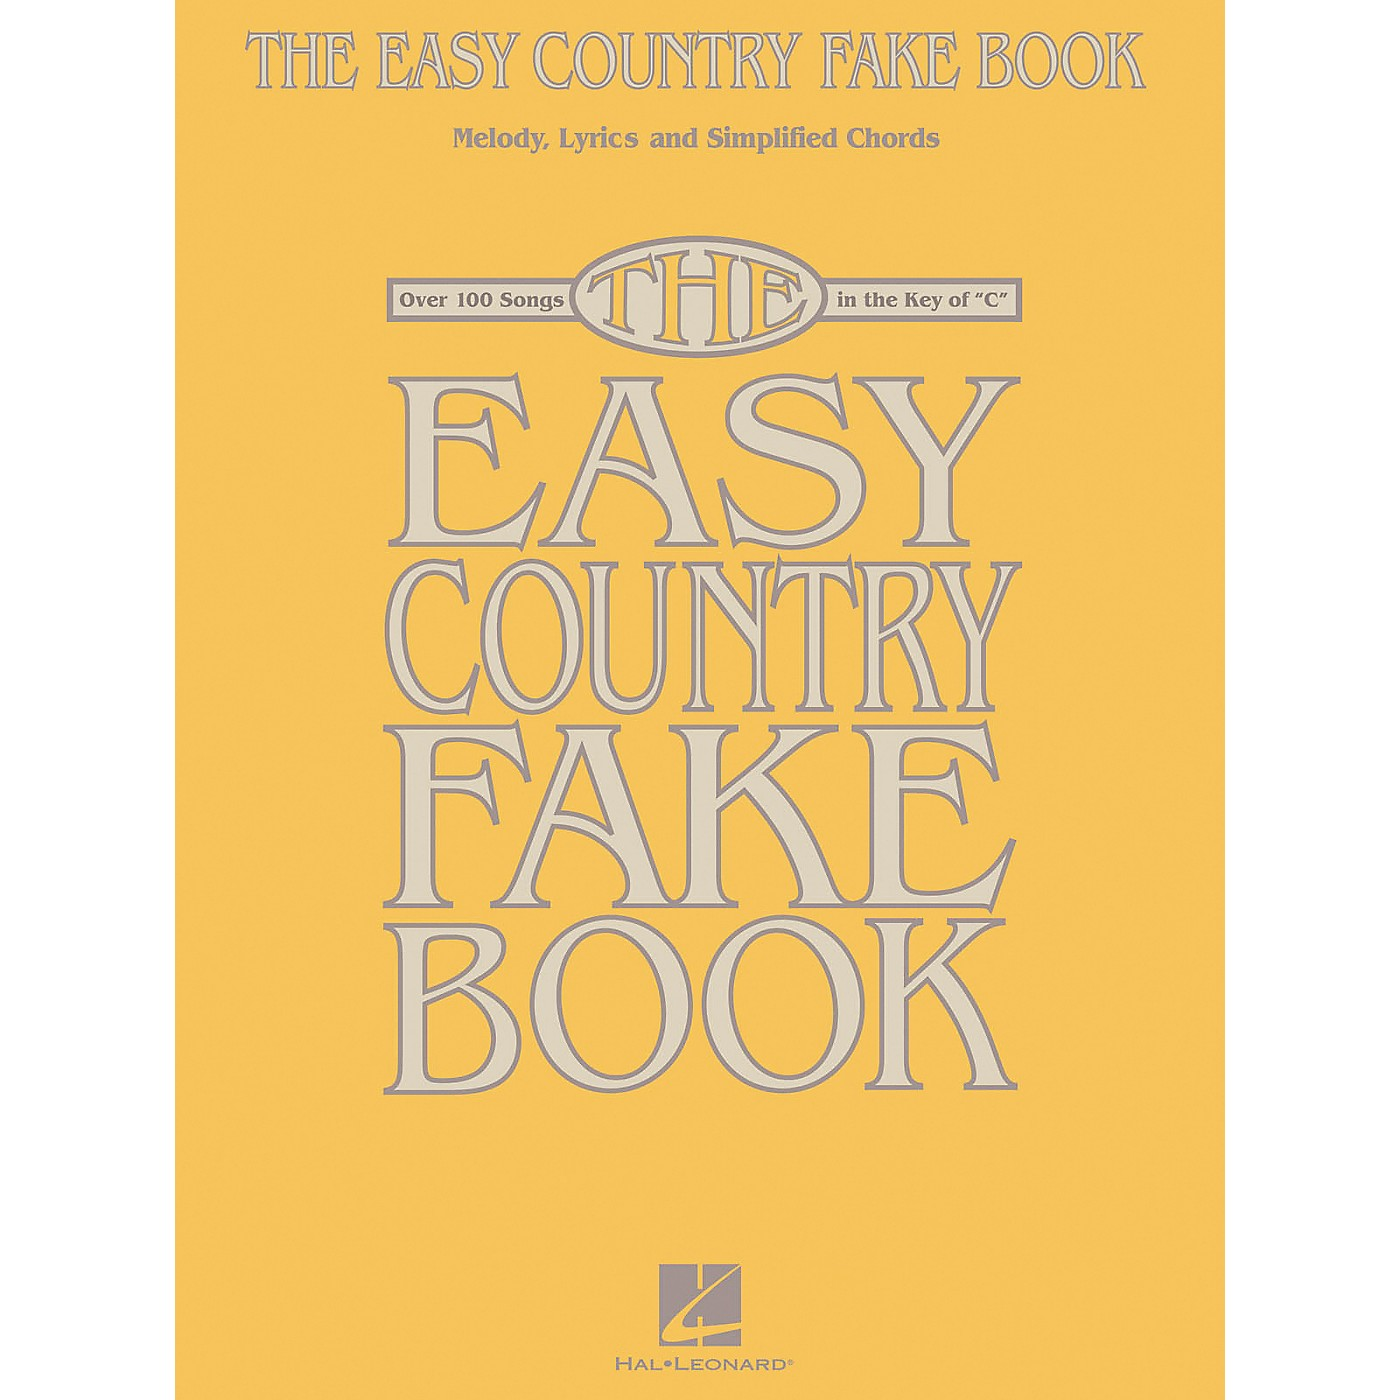 Hal Leonard The Easy Country Fake Book - Melody, Lyrics and Simplified Chords for 100 Songs thumbnail